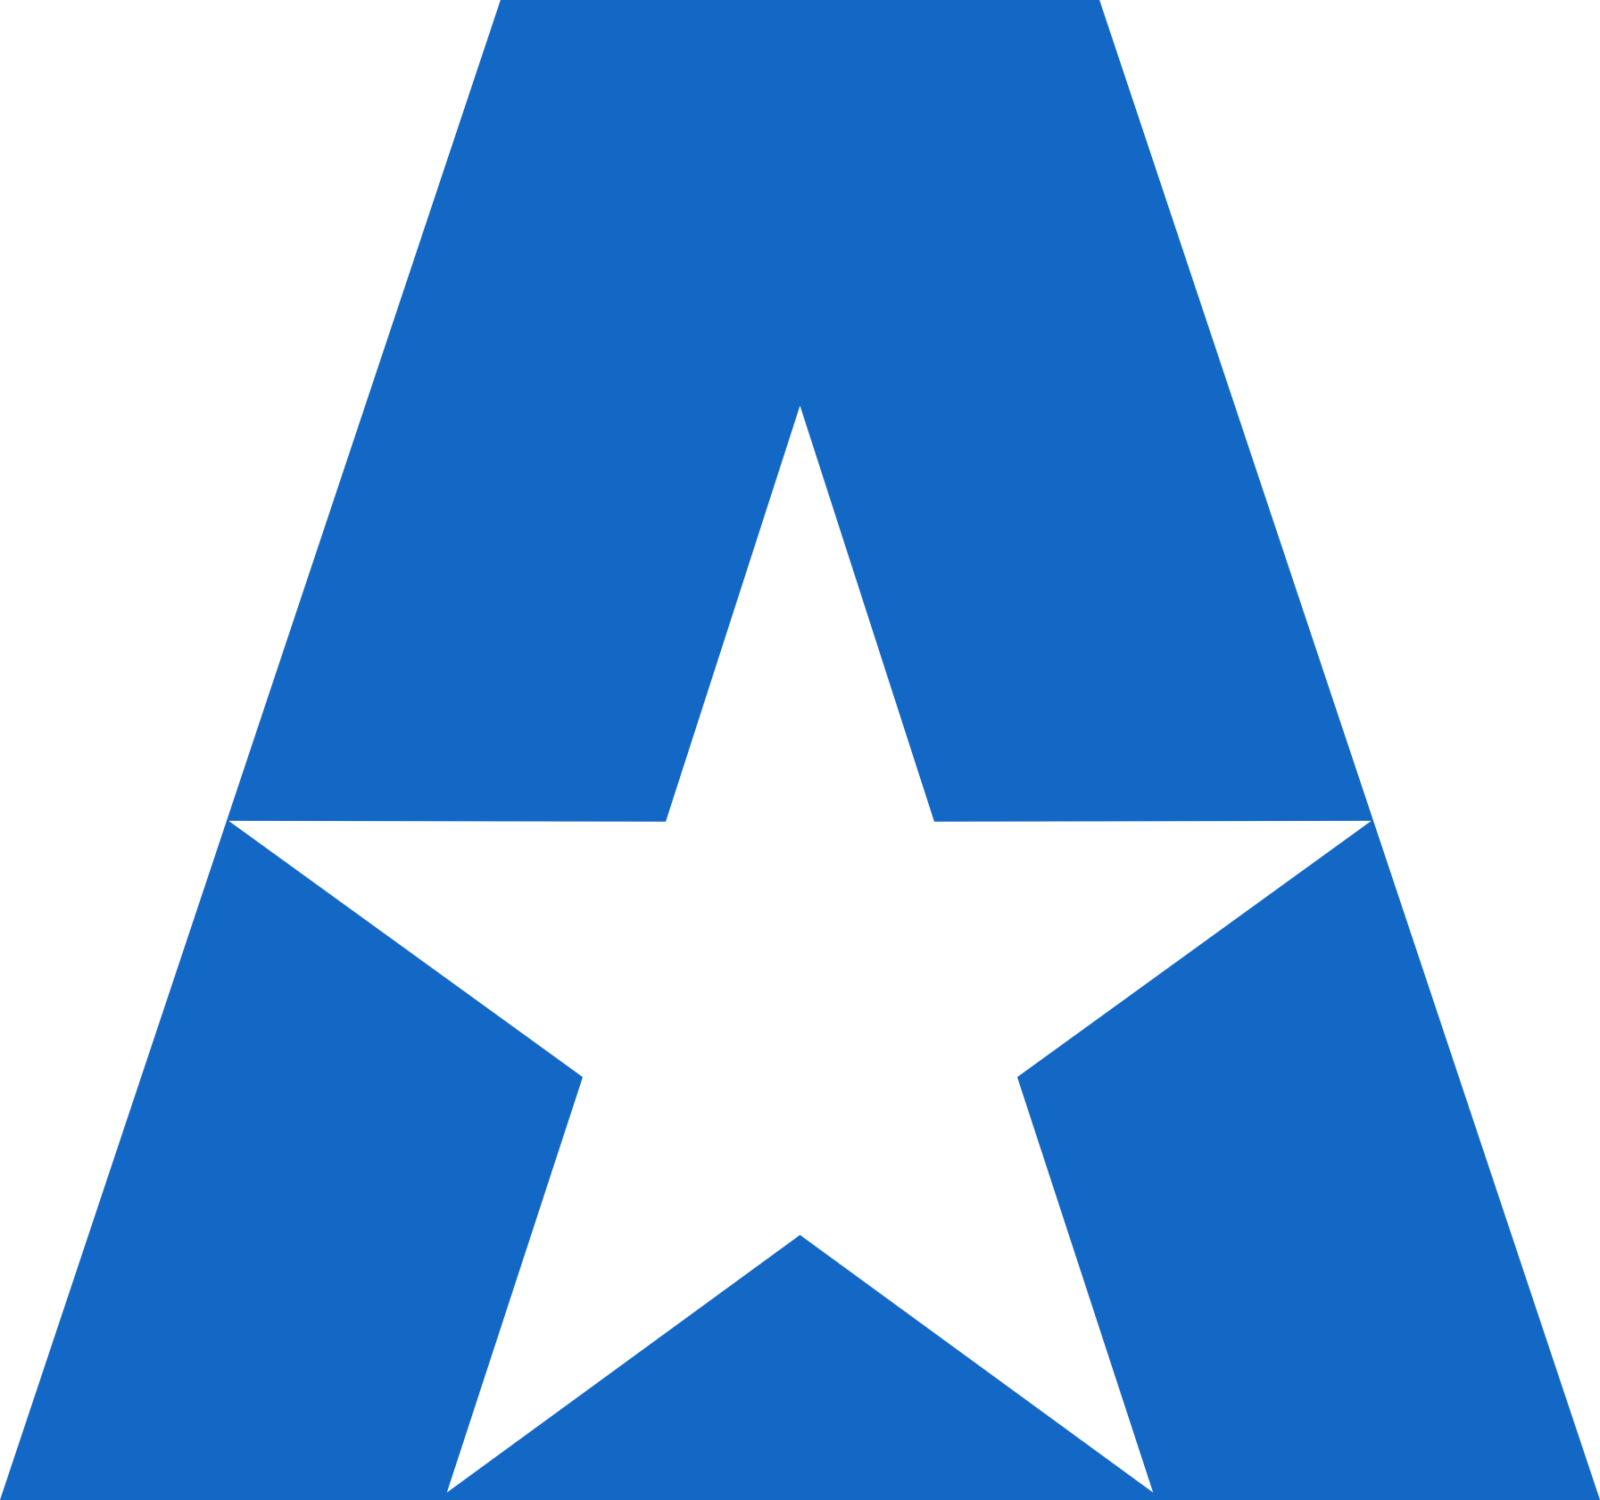 http://aegee-tallinn.ee/wp-content/uploads/2019/09/VIM2_A-Symbol_blue-1-1600x1500.png